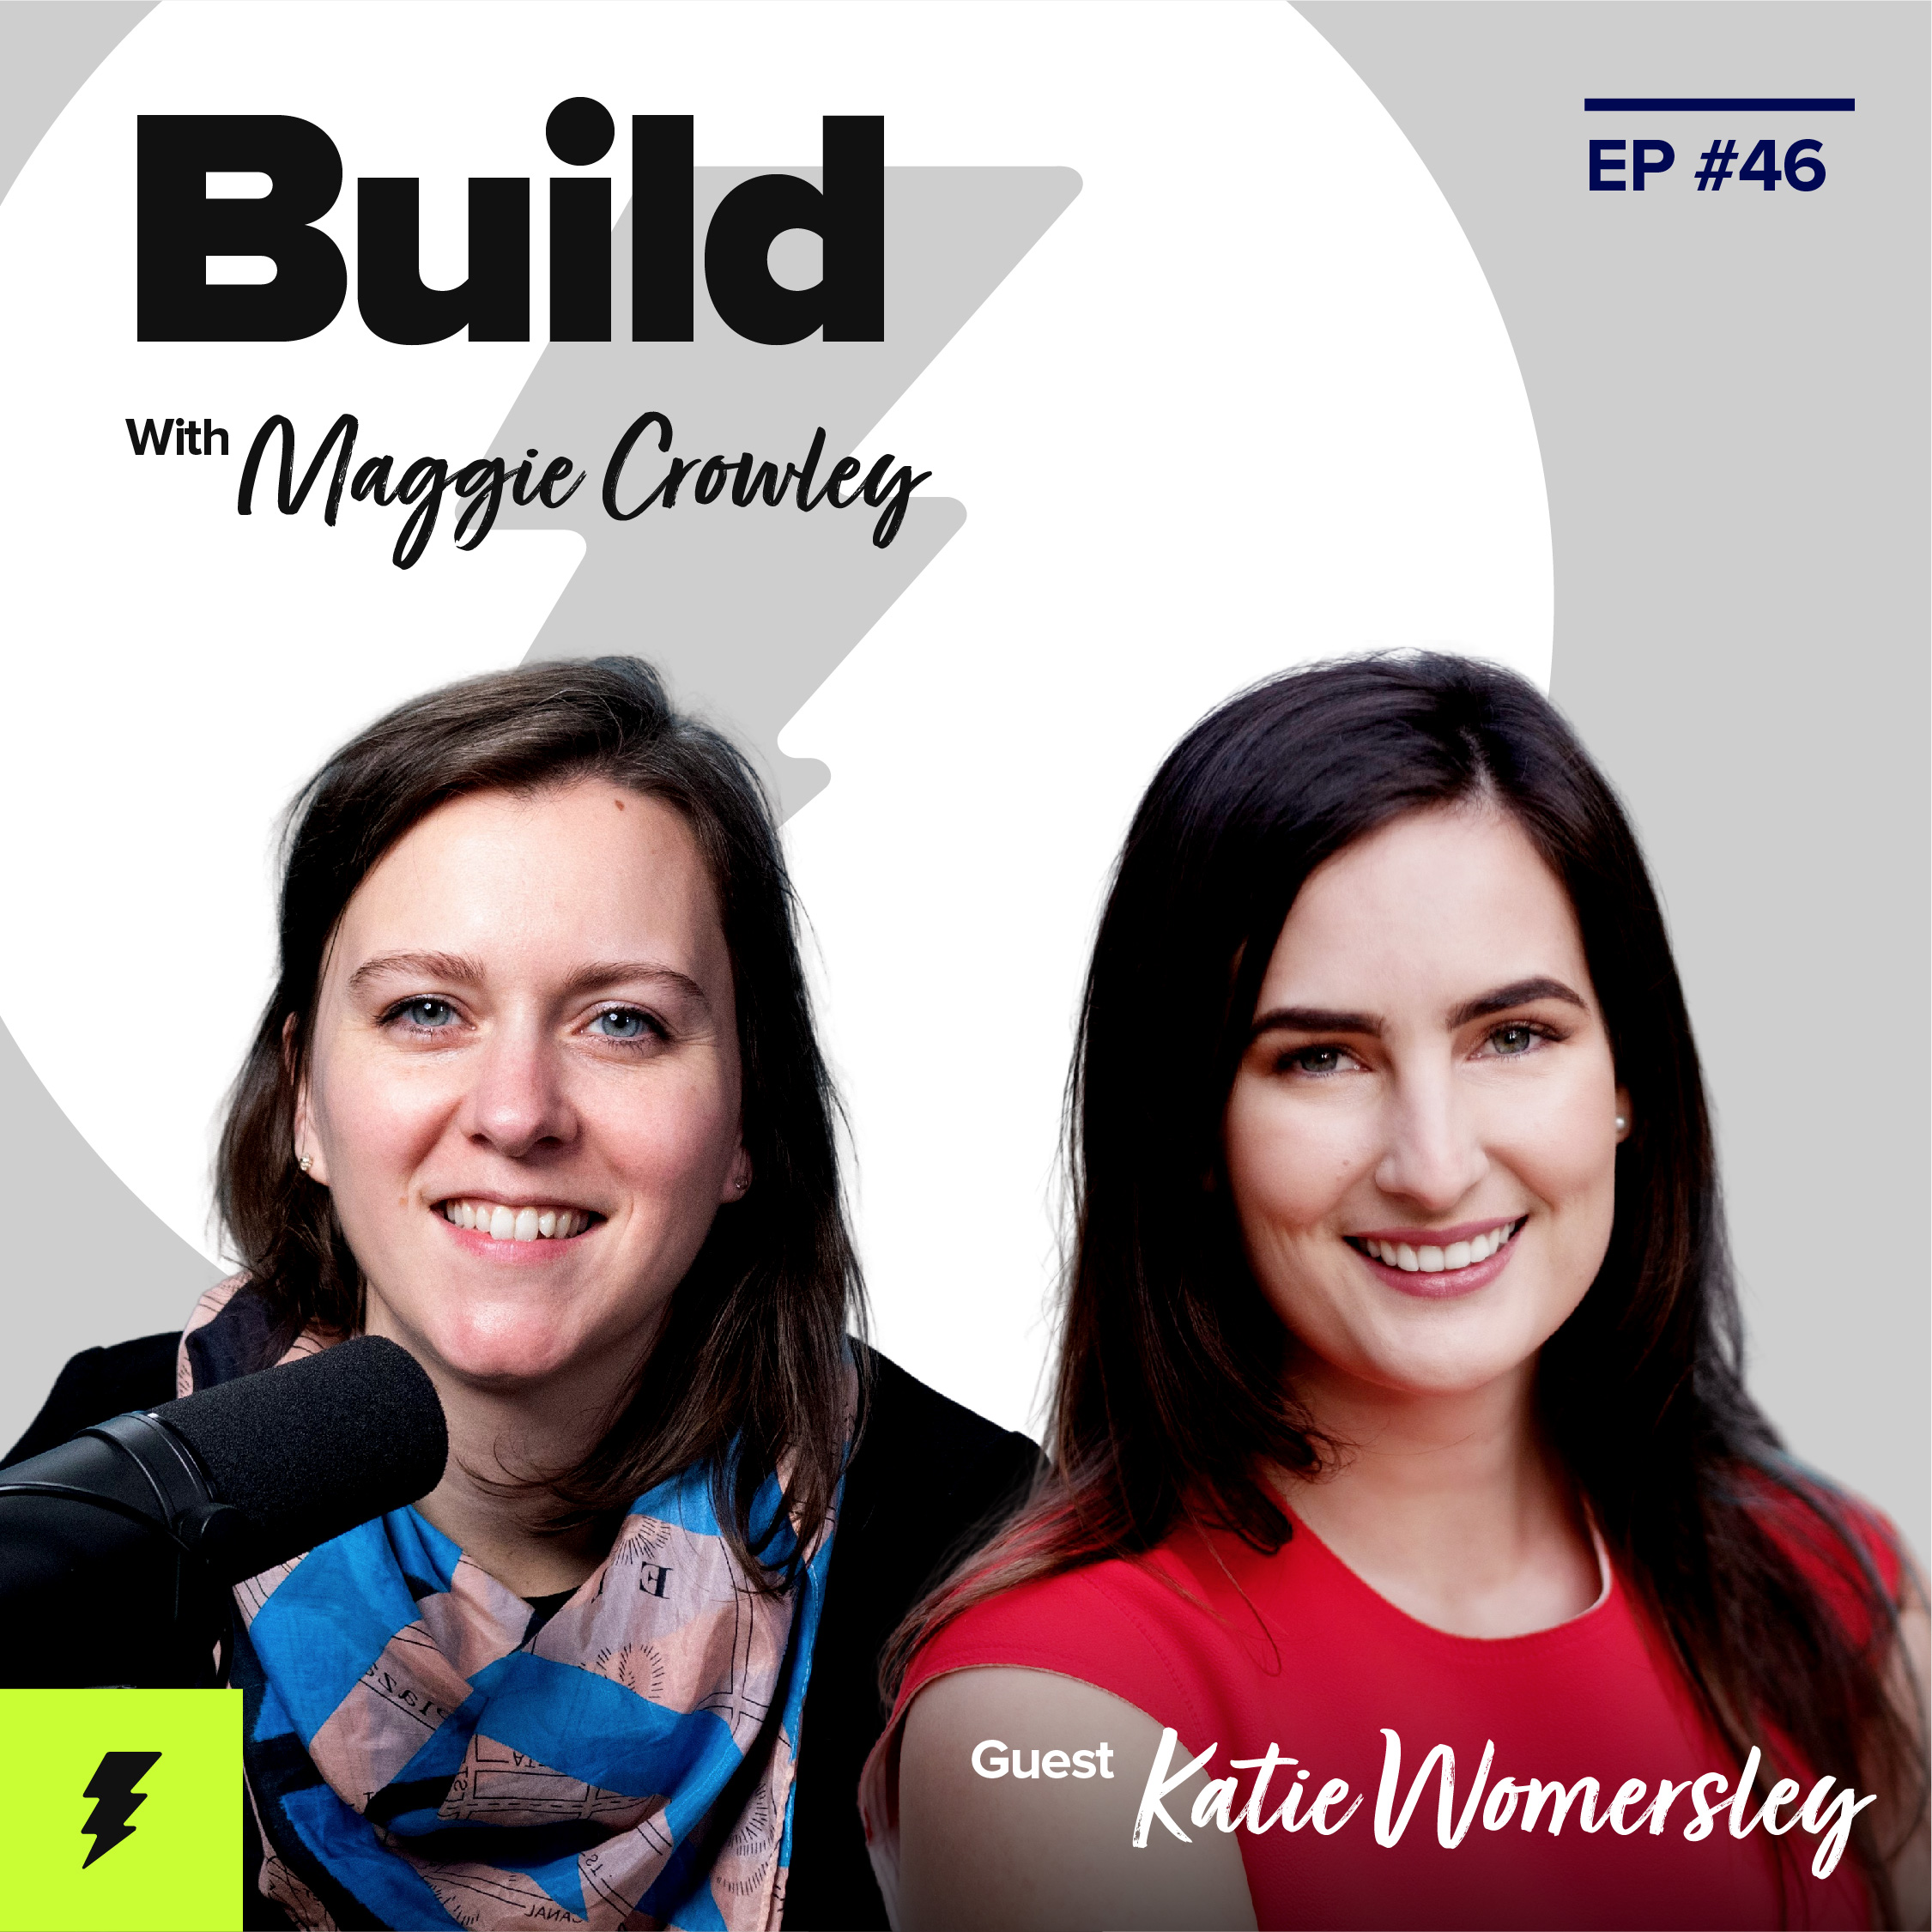 Buffer's Katie Womersley On Managers And Mental Health